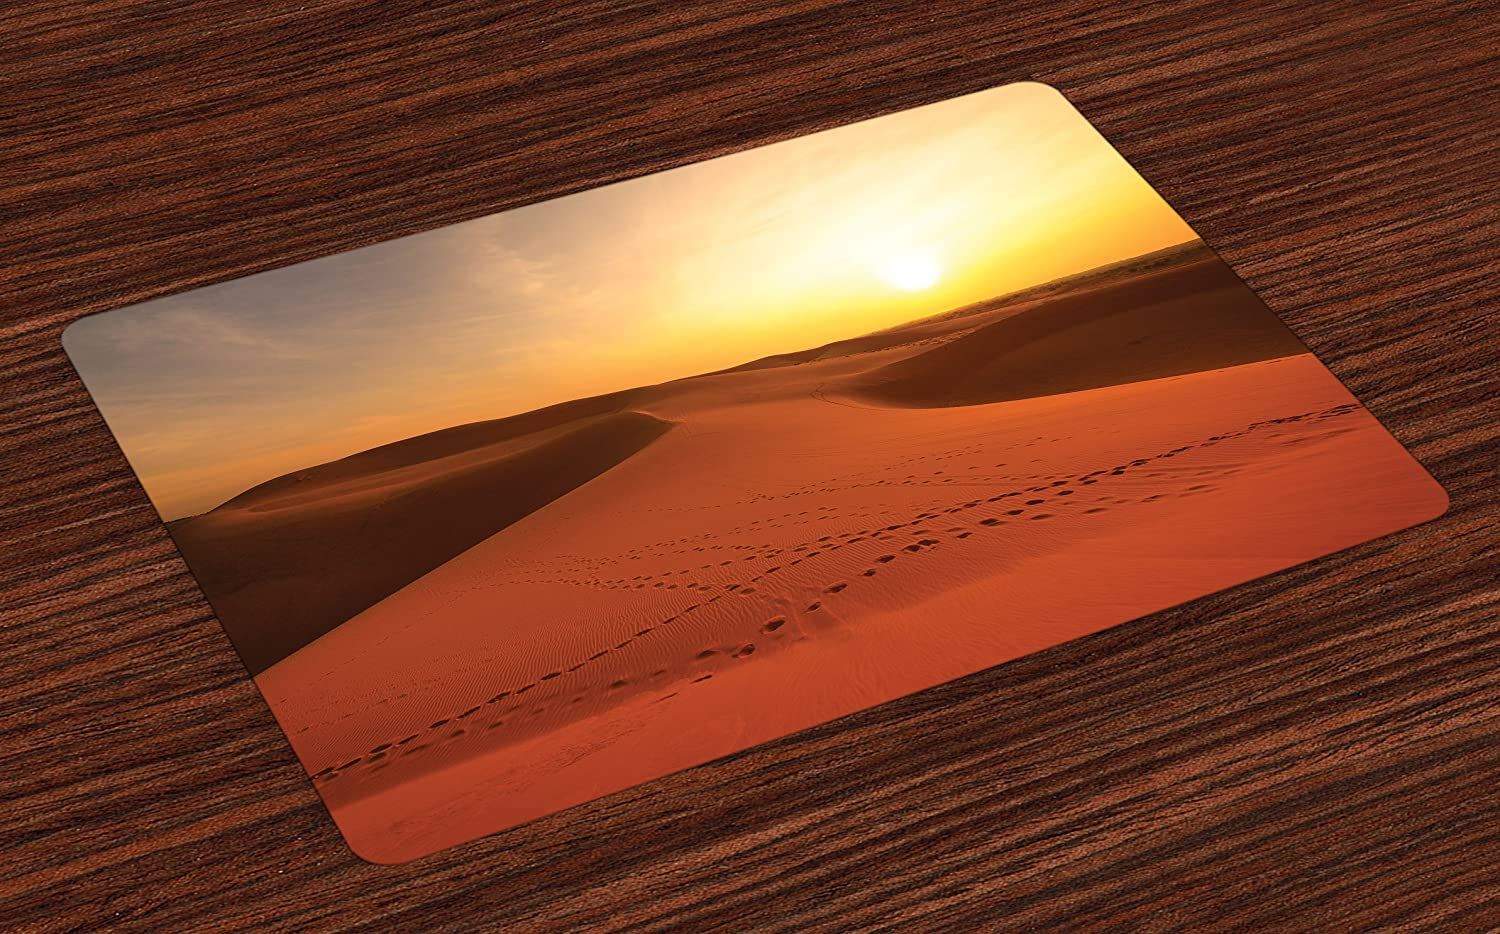 Ambesonne Desert Place Mats Set of 4, Footprints on Sand Dunes at Sunrise Hot Dubai Landscape Travel Destination, Washable Fabric Placemats for Dining Room Kitchen Table Decor, Dark Orange Yellow